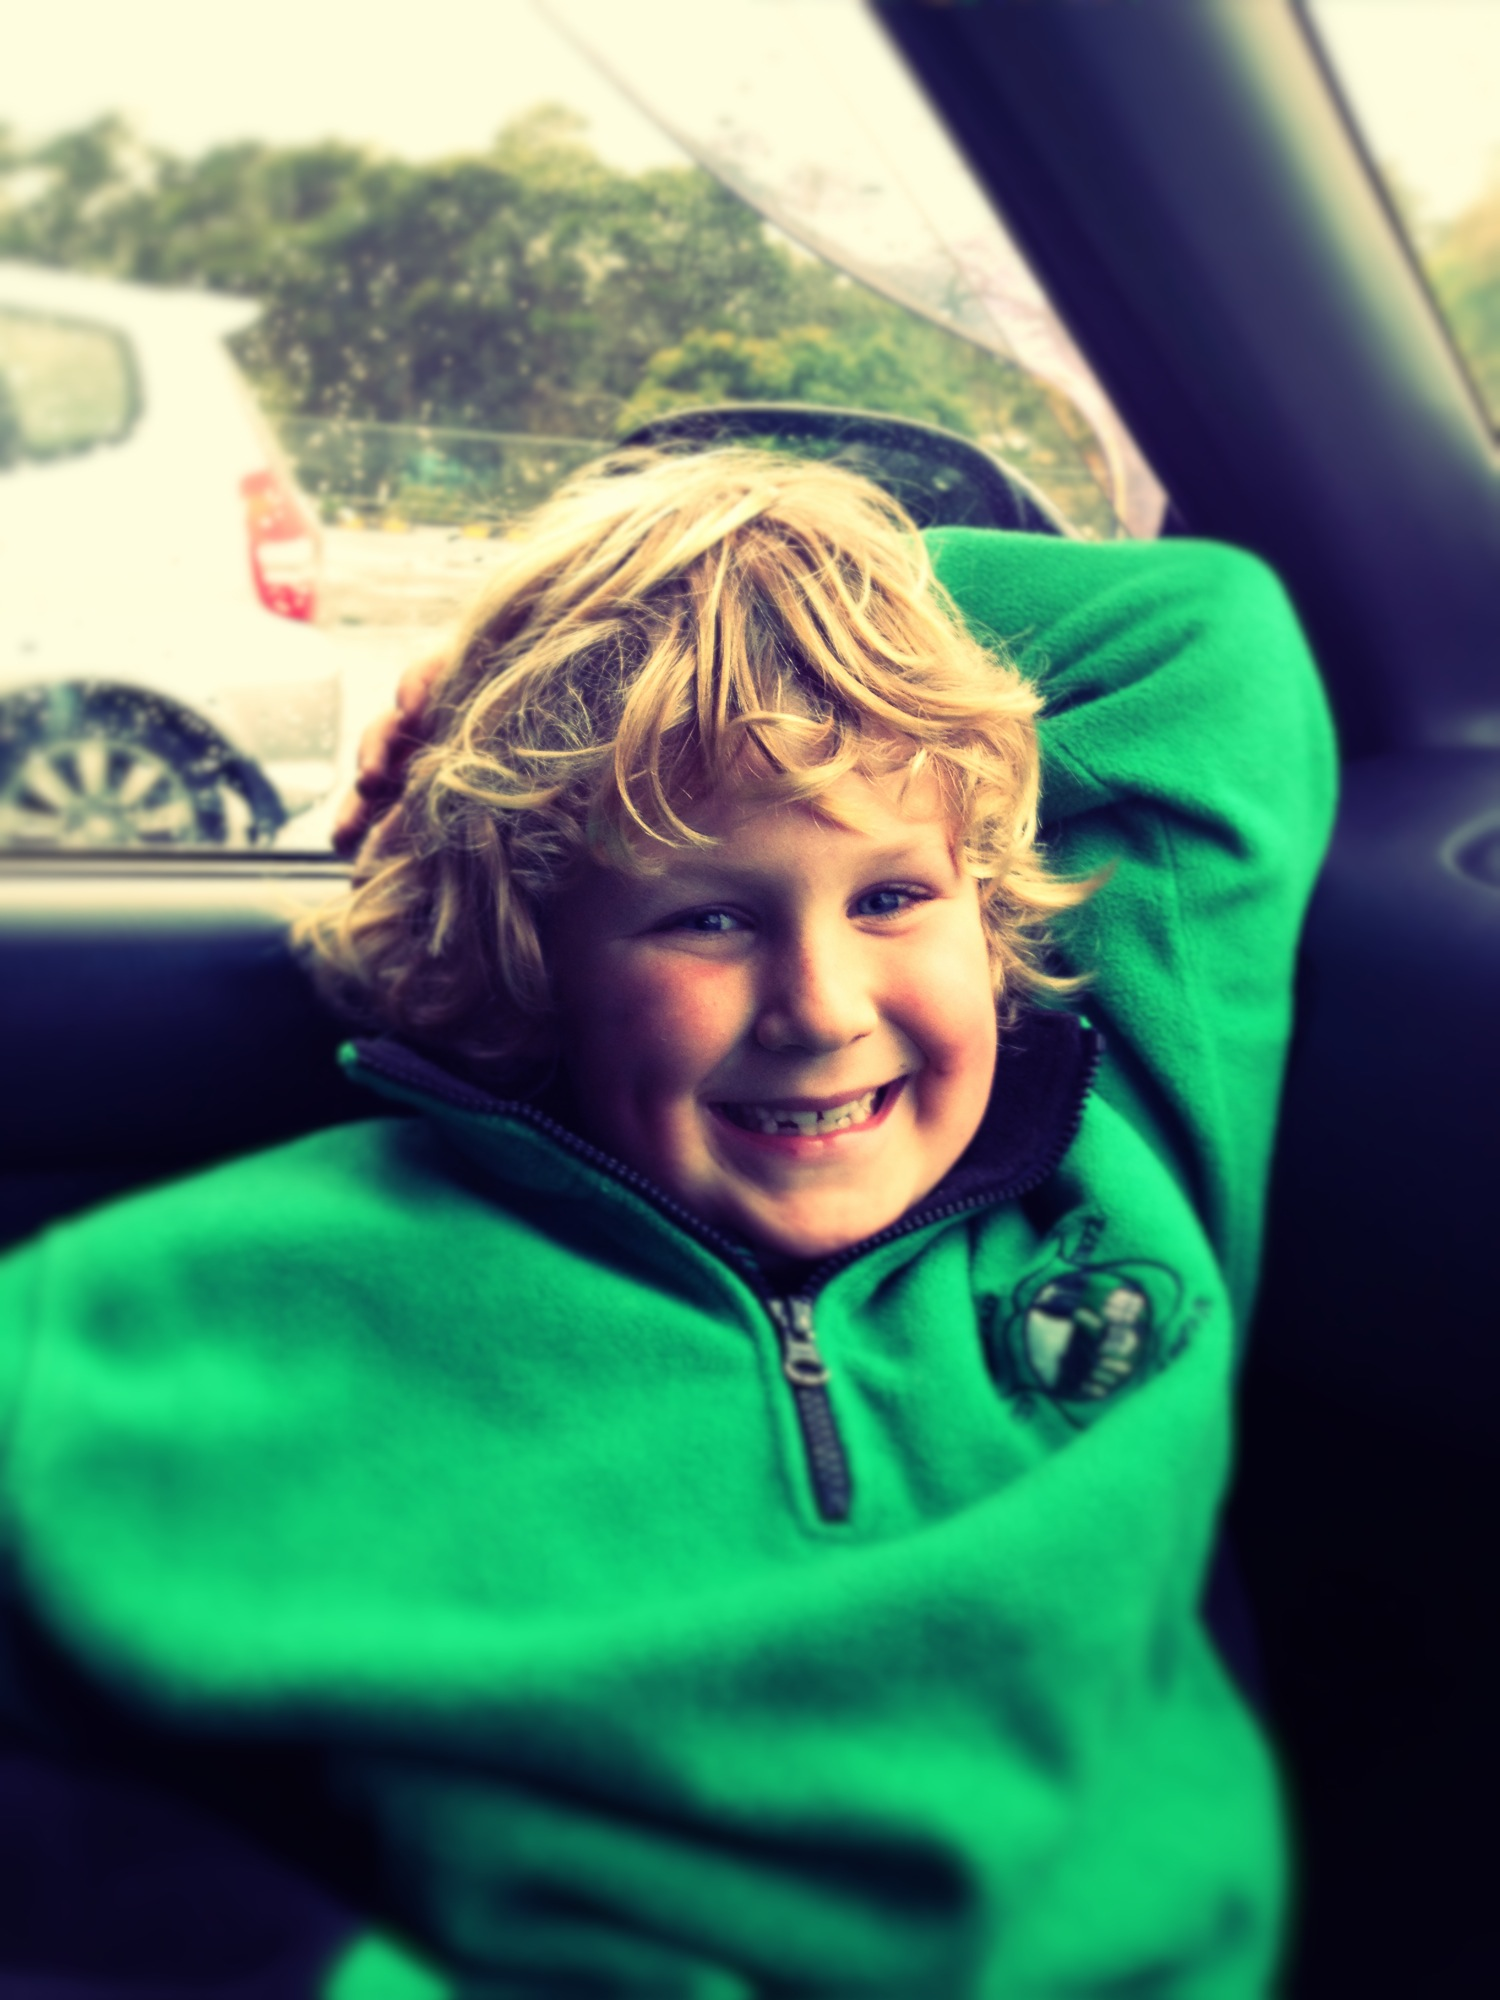 Learning spelling words in the car before swimming